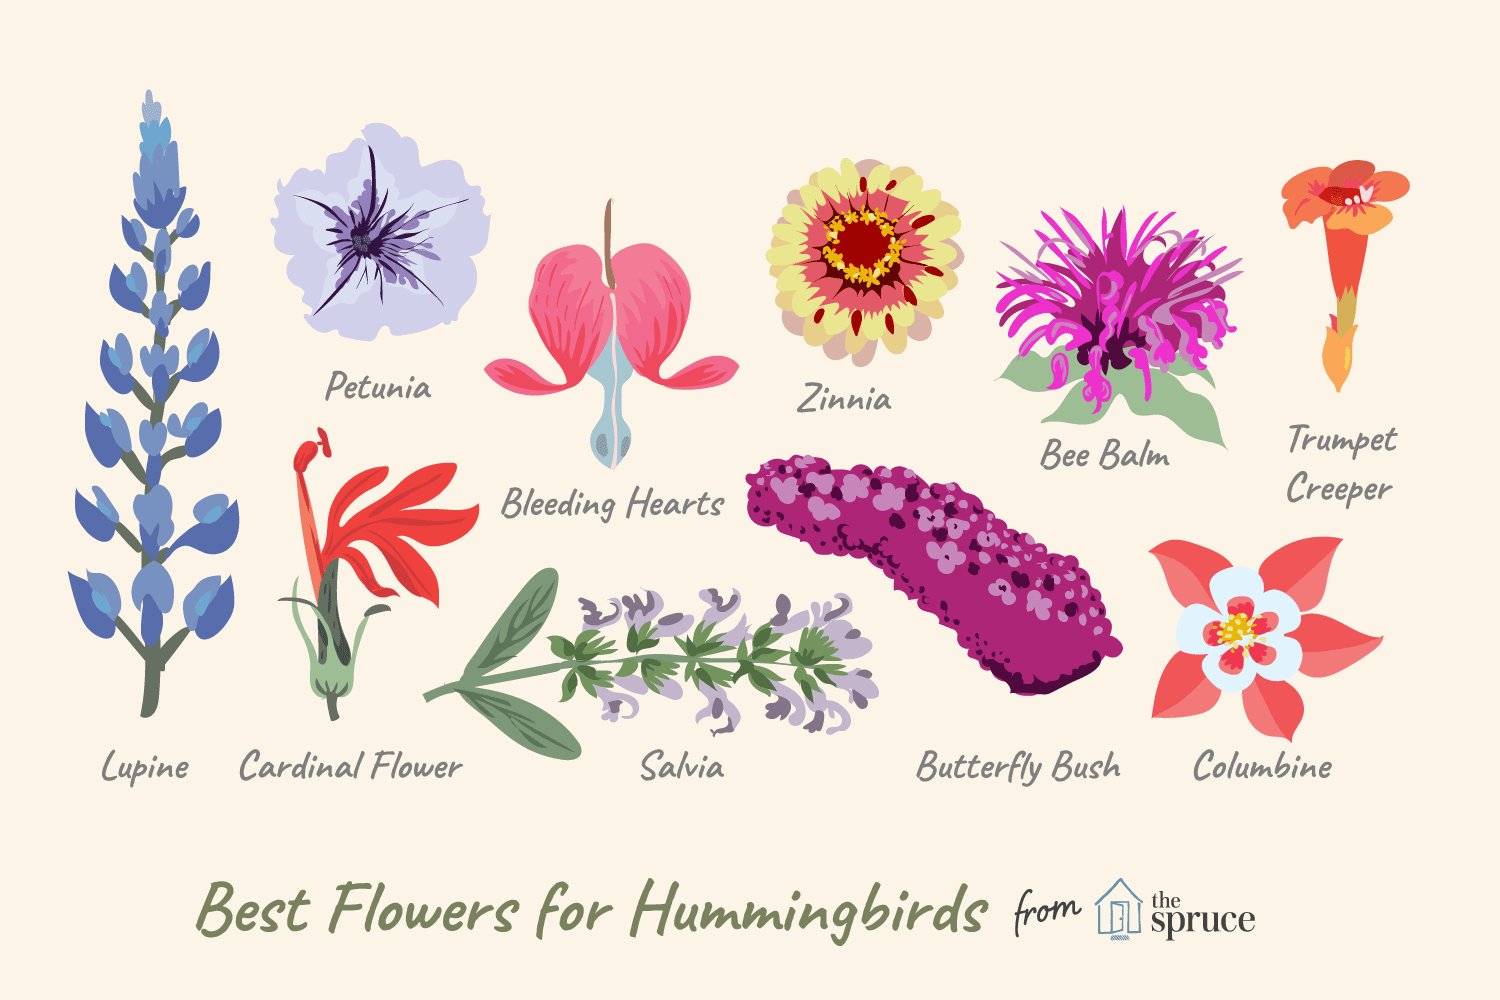 10 Best Flowers For Attracting Hummingbirds